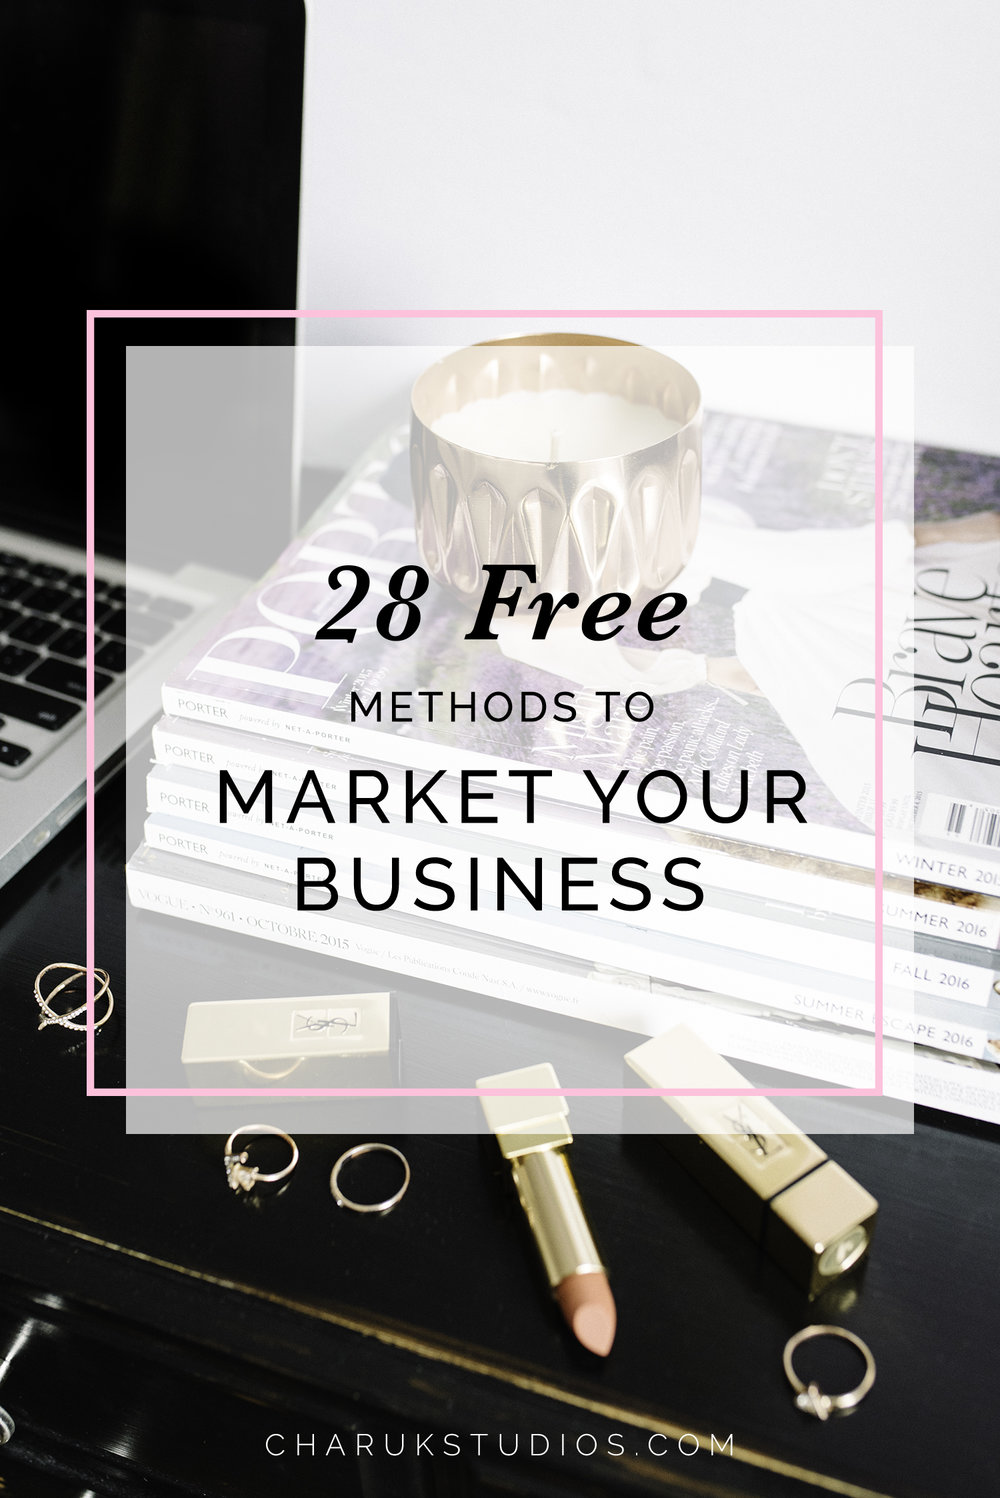 28 Free Methods to Market your Business by Charuk Studios